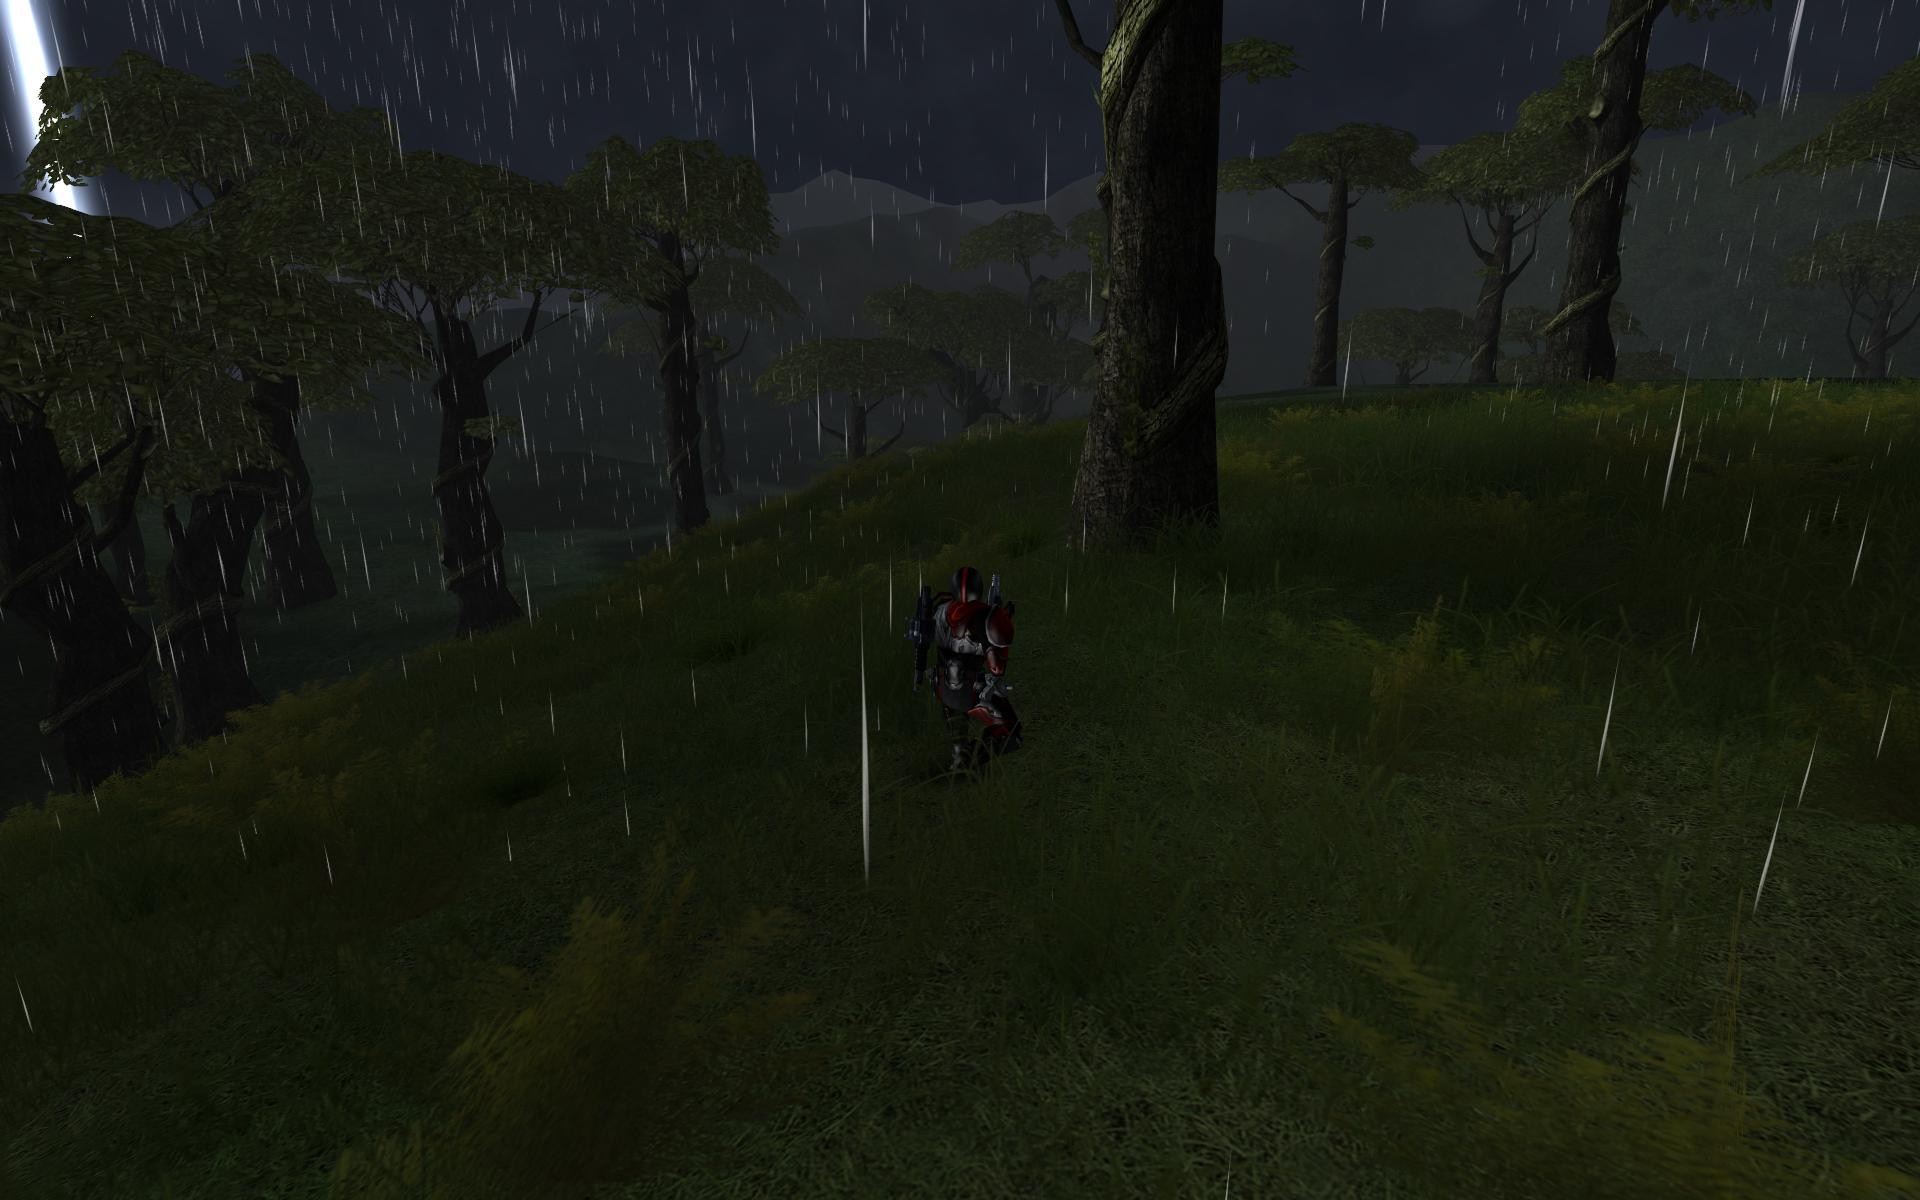 PlanetSide - A hefty rain before a tower raid.